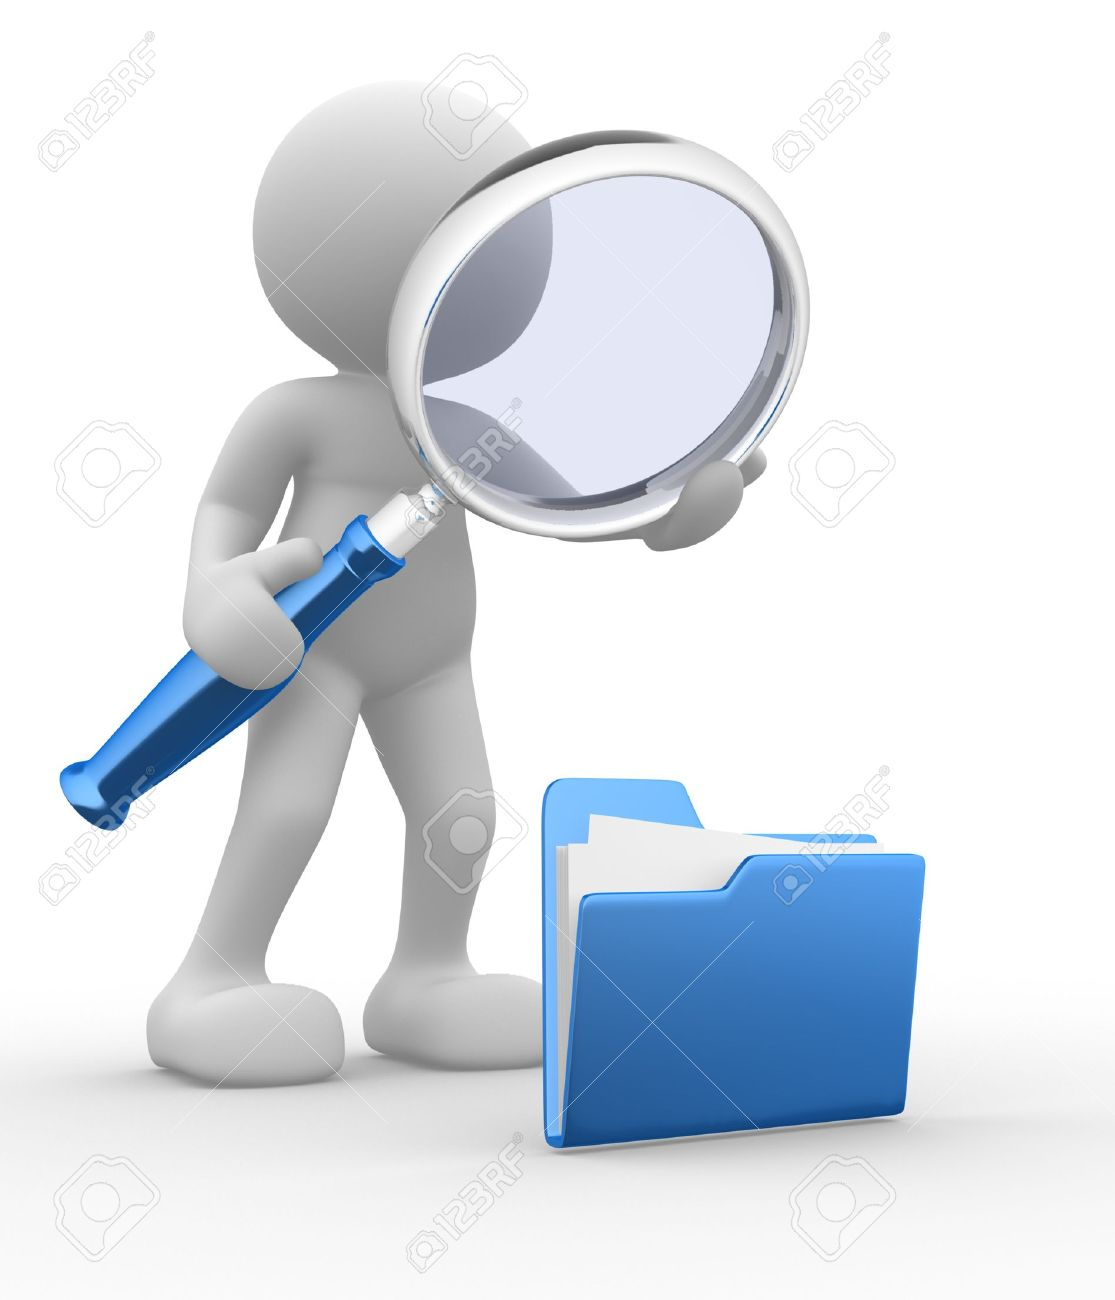 Search Stock Photos Search concept